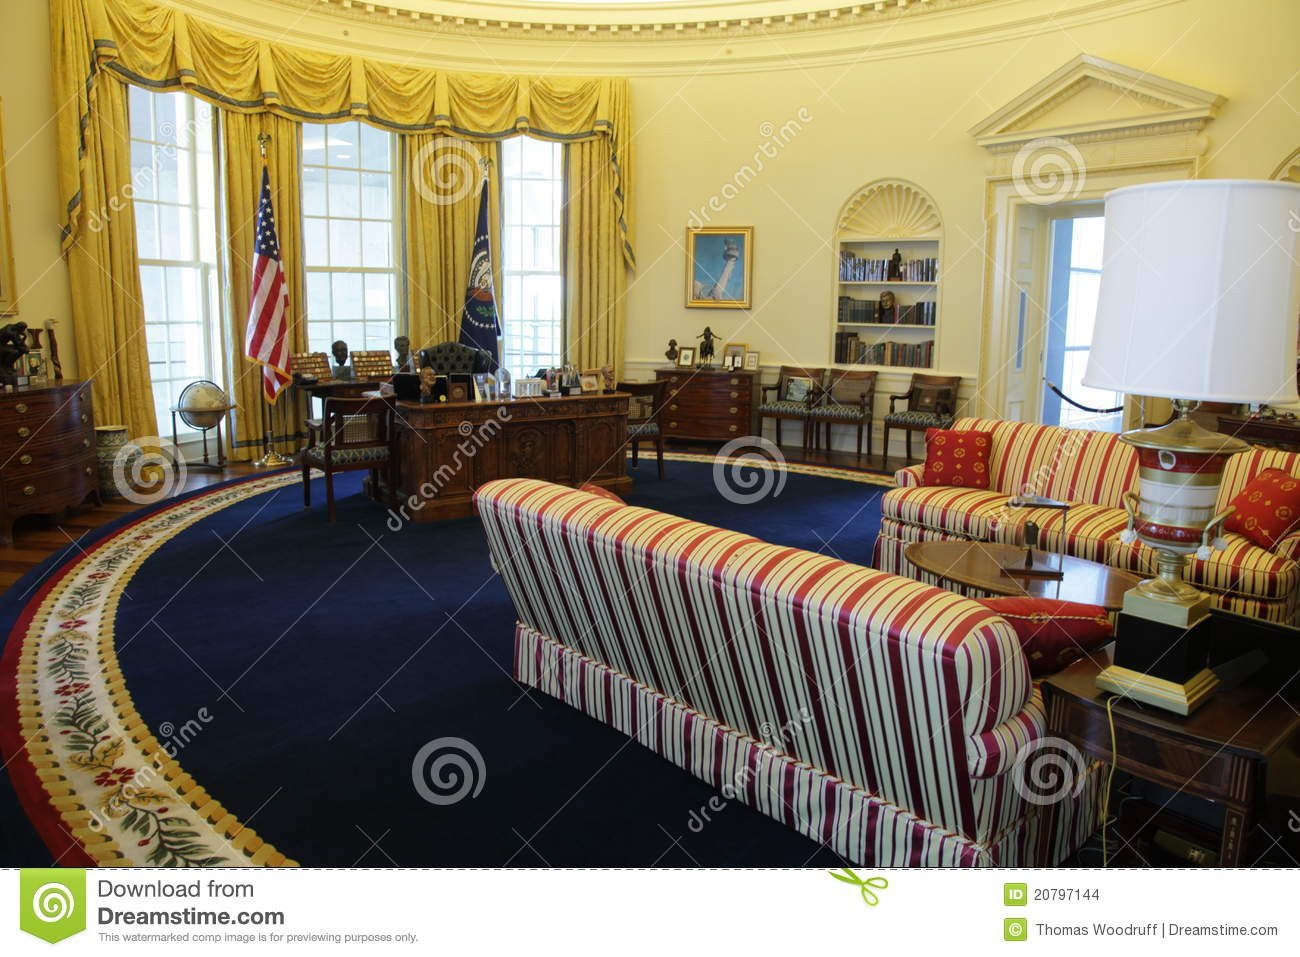 clinton oval office. Download Comp Clinton Oval Office